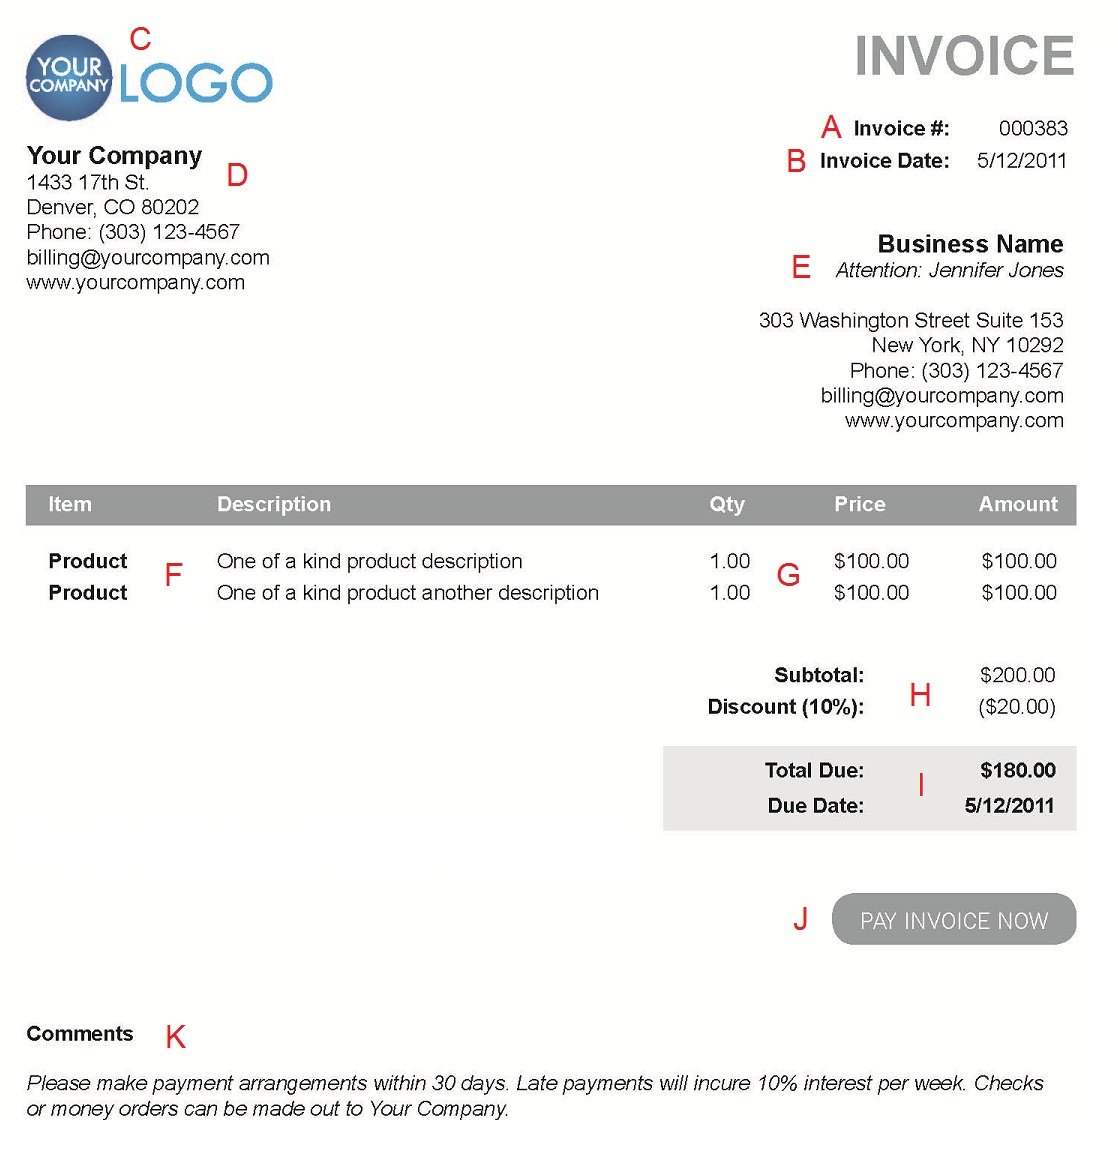 Coolmathgamesus  Pleasant The  Different Sections Of An Electronic Payment Invoice With Goodlooking A  With Cute Create A Receipt Also Gamestop Receipt In Addition Delaware Gross Receipts Tax And Receipt Hog Reviews As Well As Ross Return Policy Without Receipt Additionally Walmart Receipt Item Lookup From Paysimplecom With Coolmathgamesus  Goodlooking The  Different Sections Of An Electronic Payment Invoice With Cute A  And Pleasant Create A Receipt Also Gamestop Receipt In Addition Delaware Gross Receipts Tax From Paysimplecom